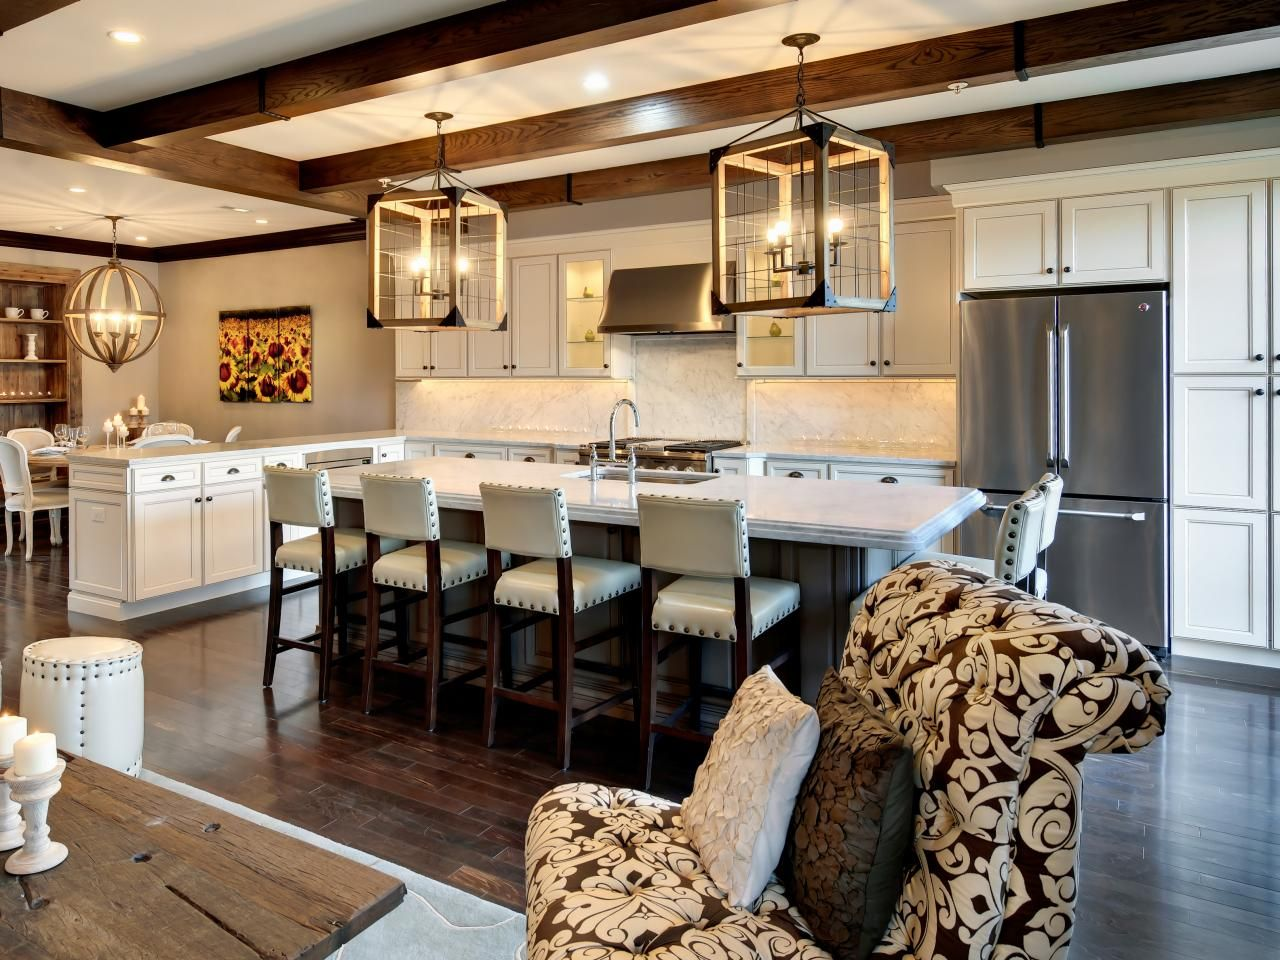 Open Concept Great Room With Rustic Lantern Lighting Open Kitchen And Living Room Kitchen Design Kitchen Living Kitchen open to great room